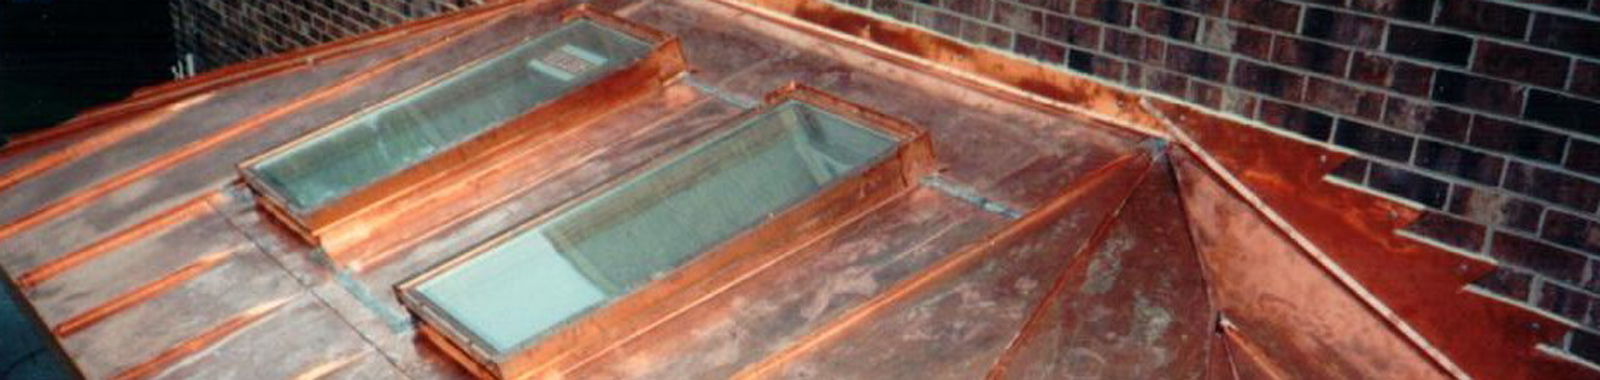 Copper Roof and Skylights